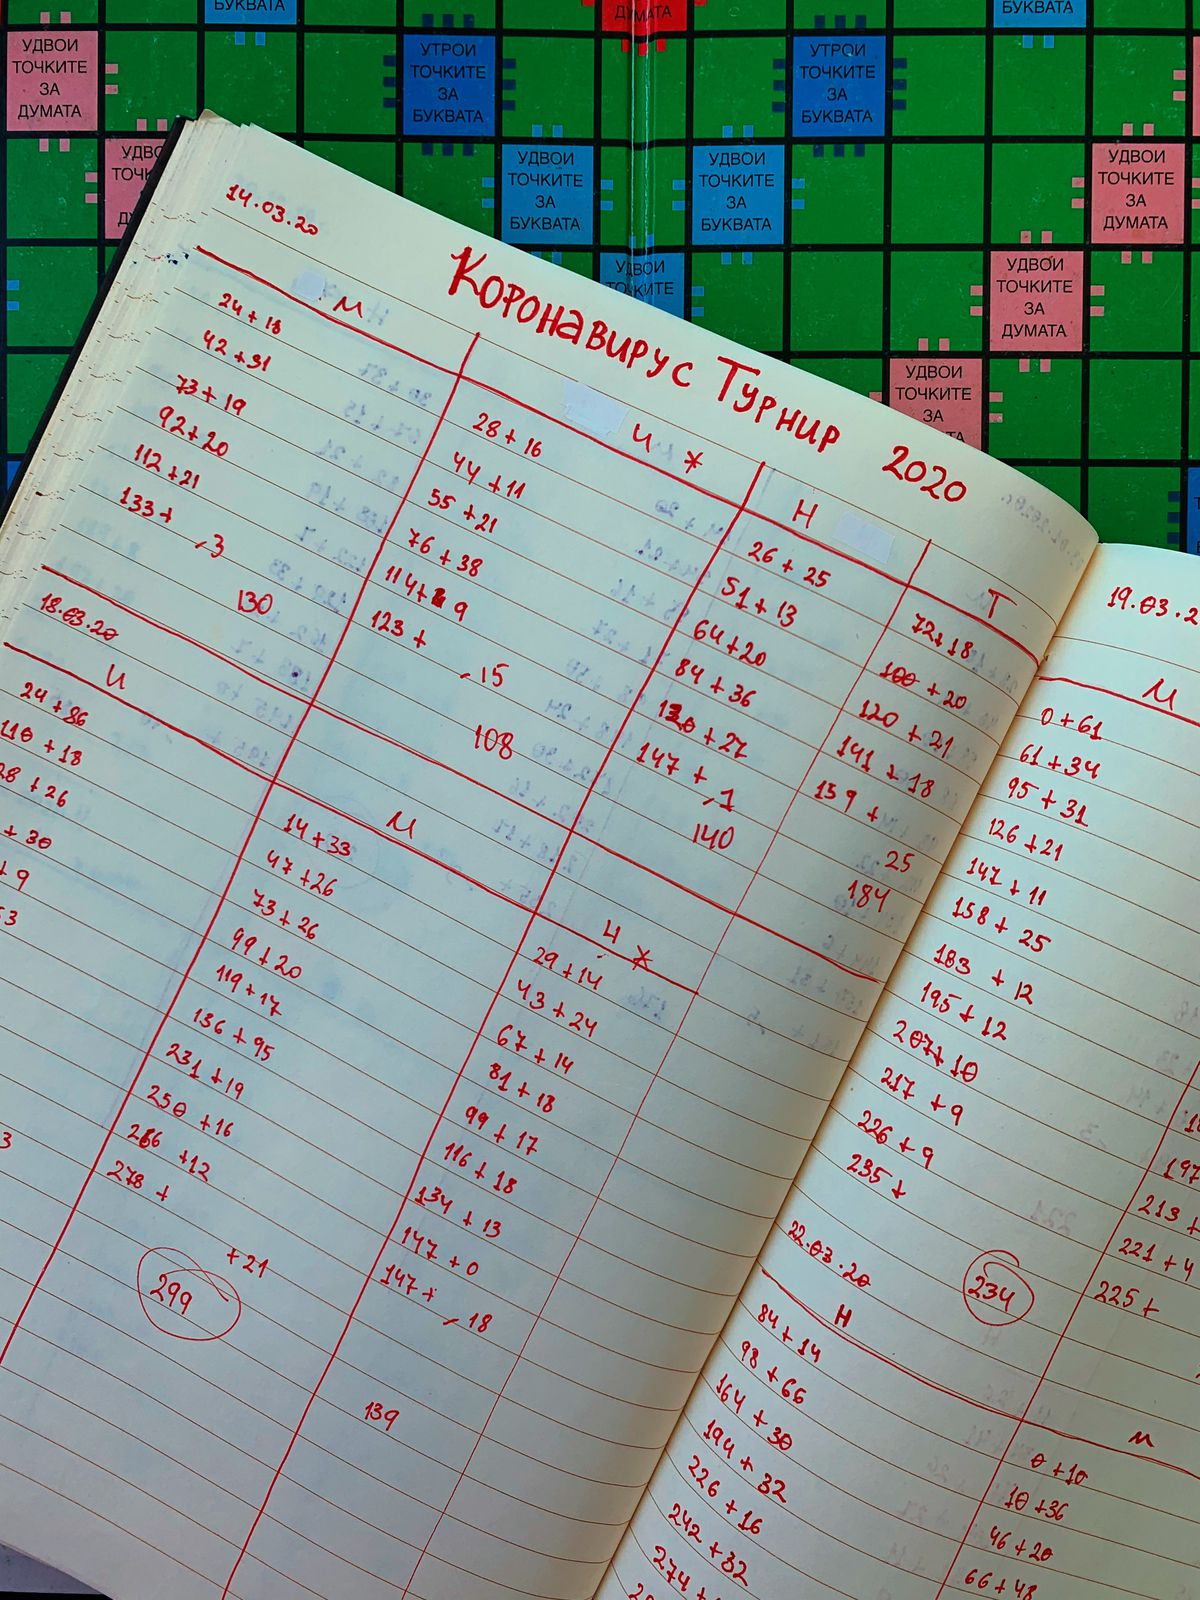 """A carefully lined page with red ink shows the scores of Scrabble games. It says """"Coronavirus Tournament 2020"""" at the top in Cyrillic letters."""